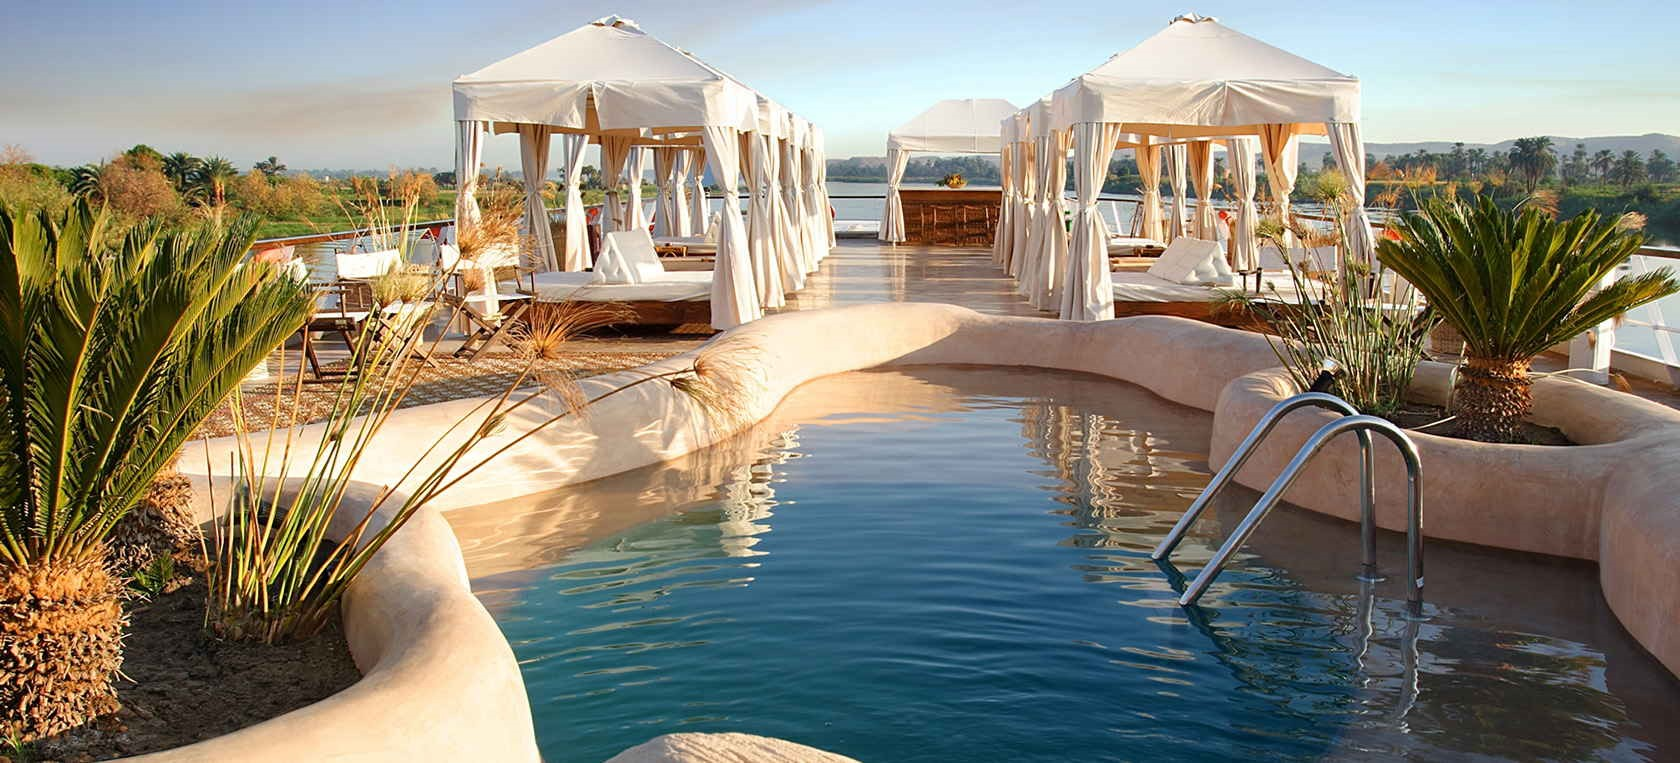 The Sanctuary Sun Boat is one of the best cruises in Egypt